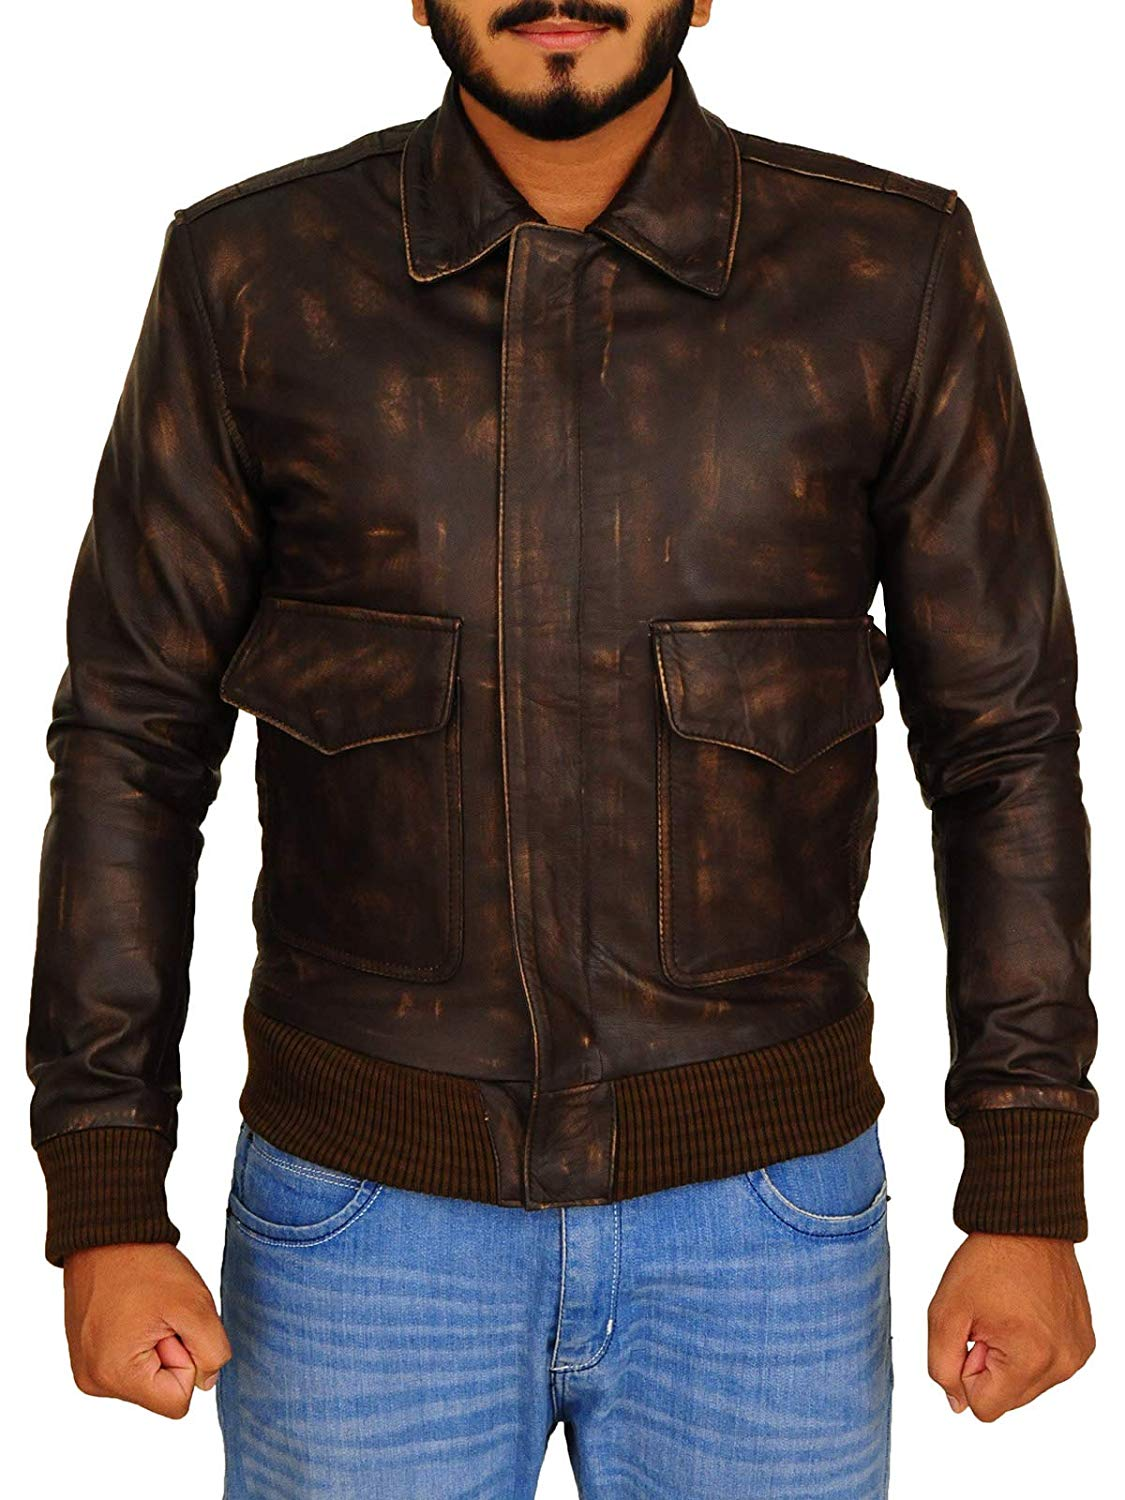 TrendHoop Aviator Mens A2 Distressed Brown Real Leather Bomber Flight Jacket at Amazon Men's Clothing store: